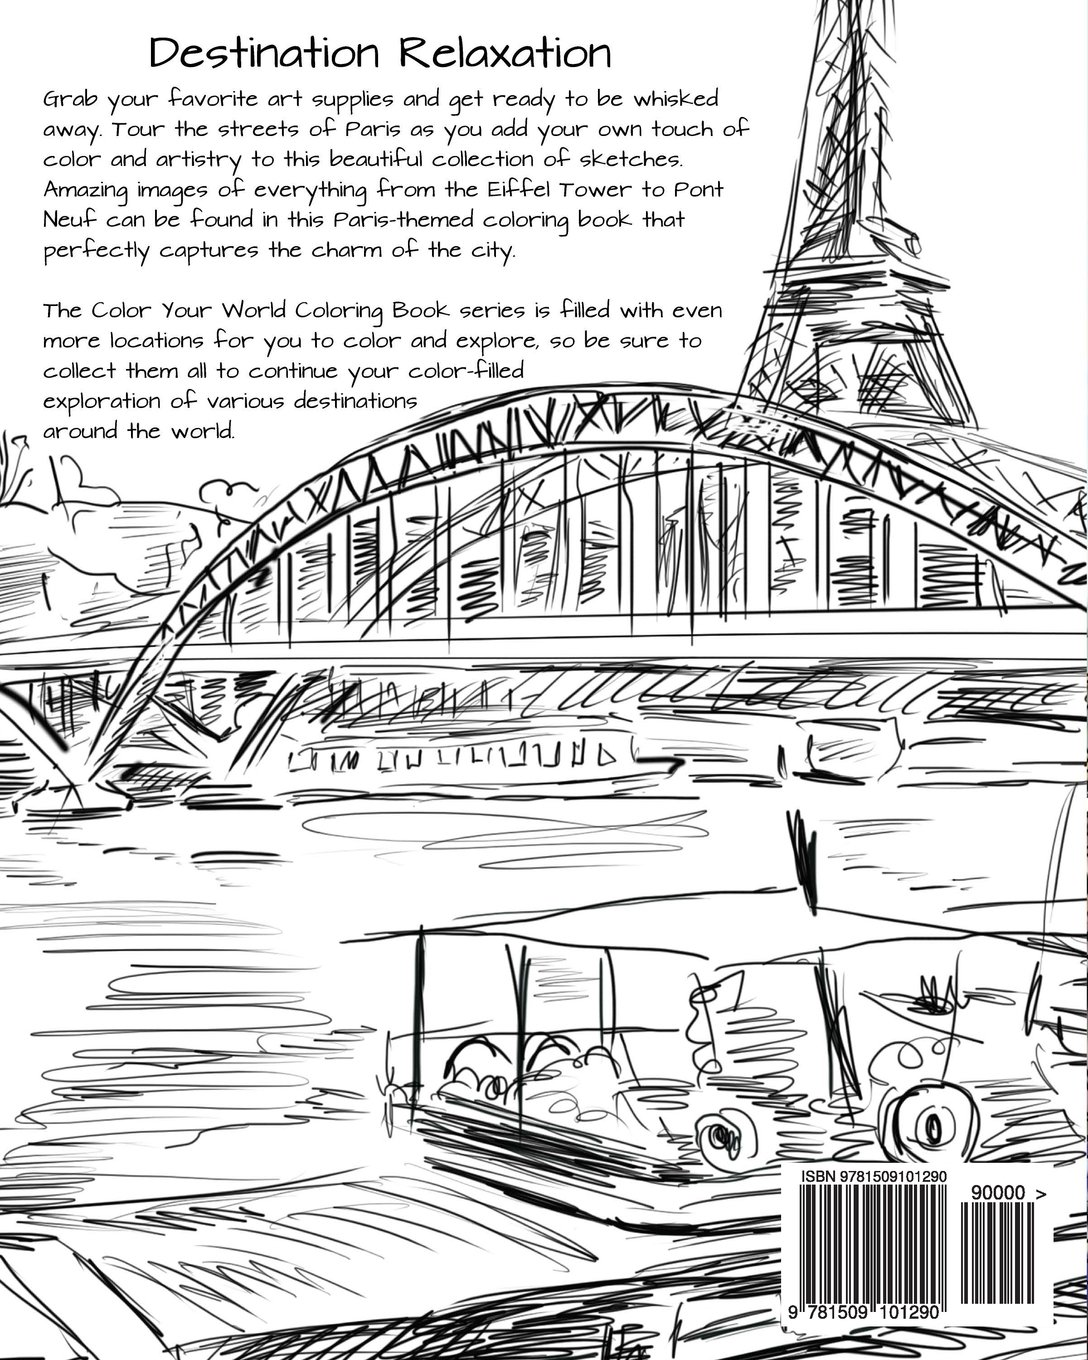 discover paris destination relaxation color your world coloring books hr wallace publishing 9781509101290 amazoncom books - Paris Coloring Book